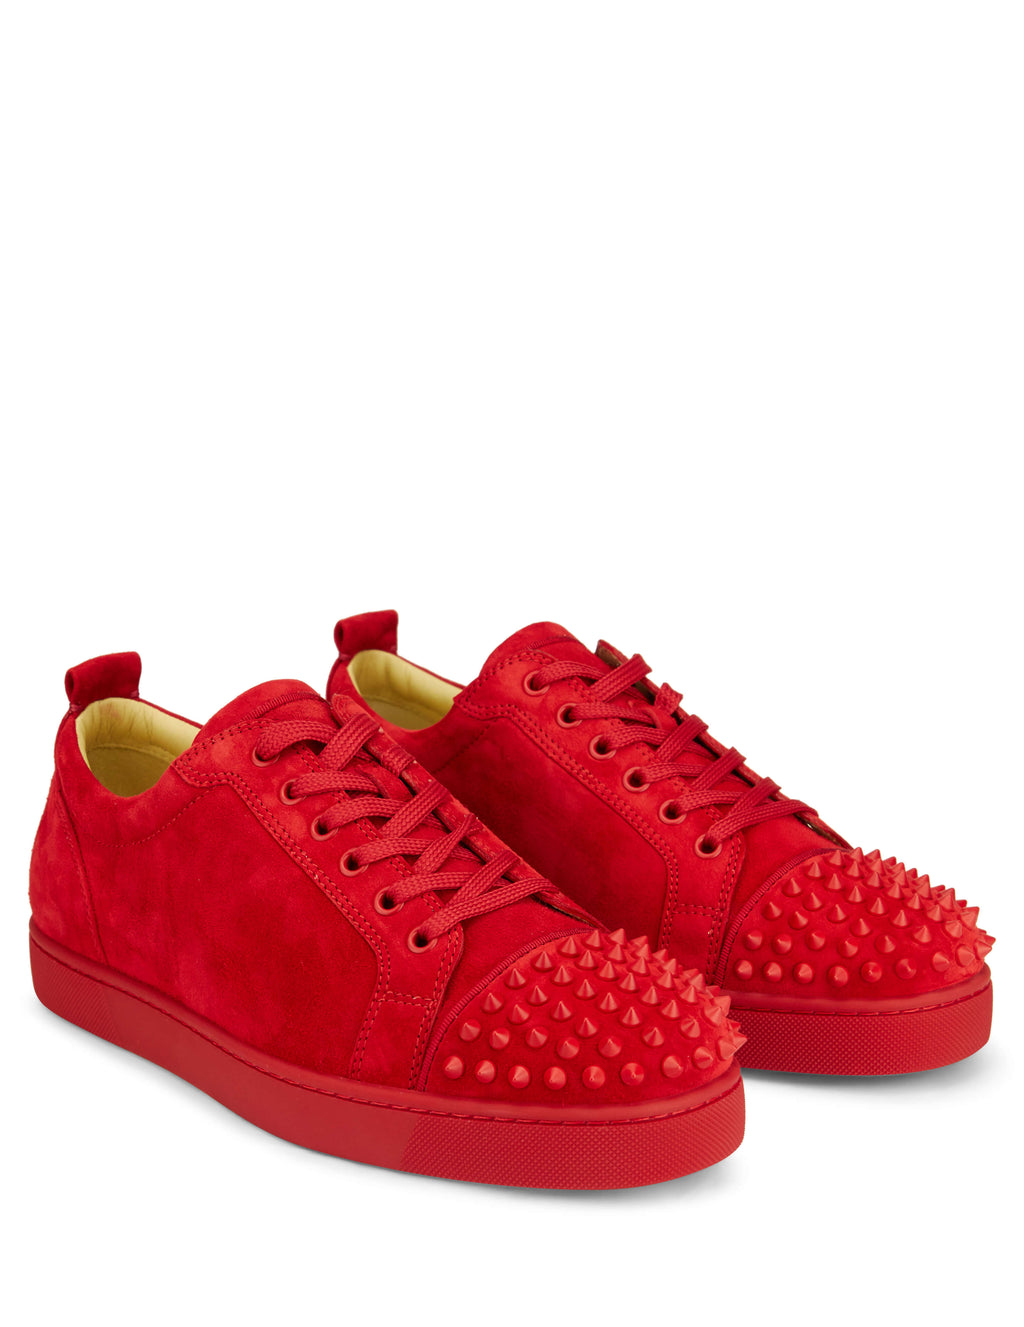 quality design 7959e f0b33 Christian Louboutin Men's Red Spikes Sneakers ...